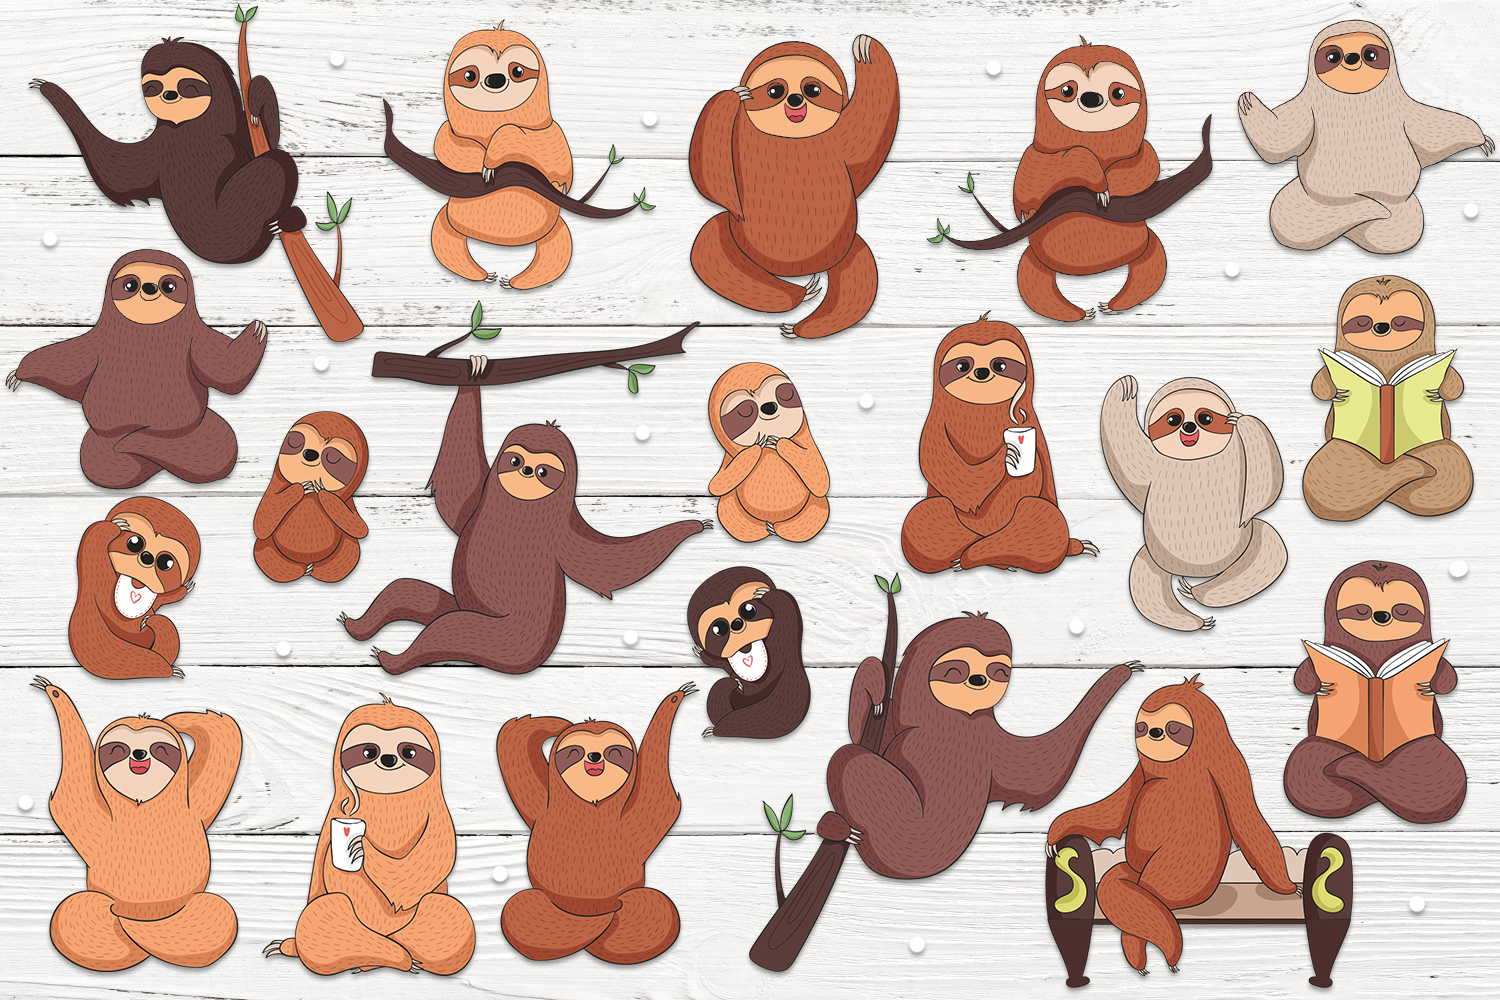 Lovable Sloths 2 example image 2